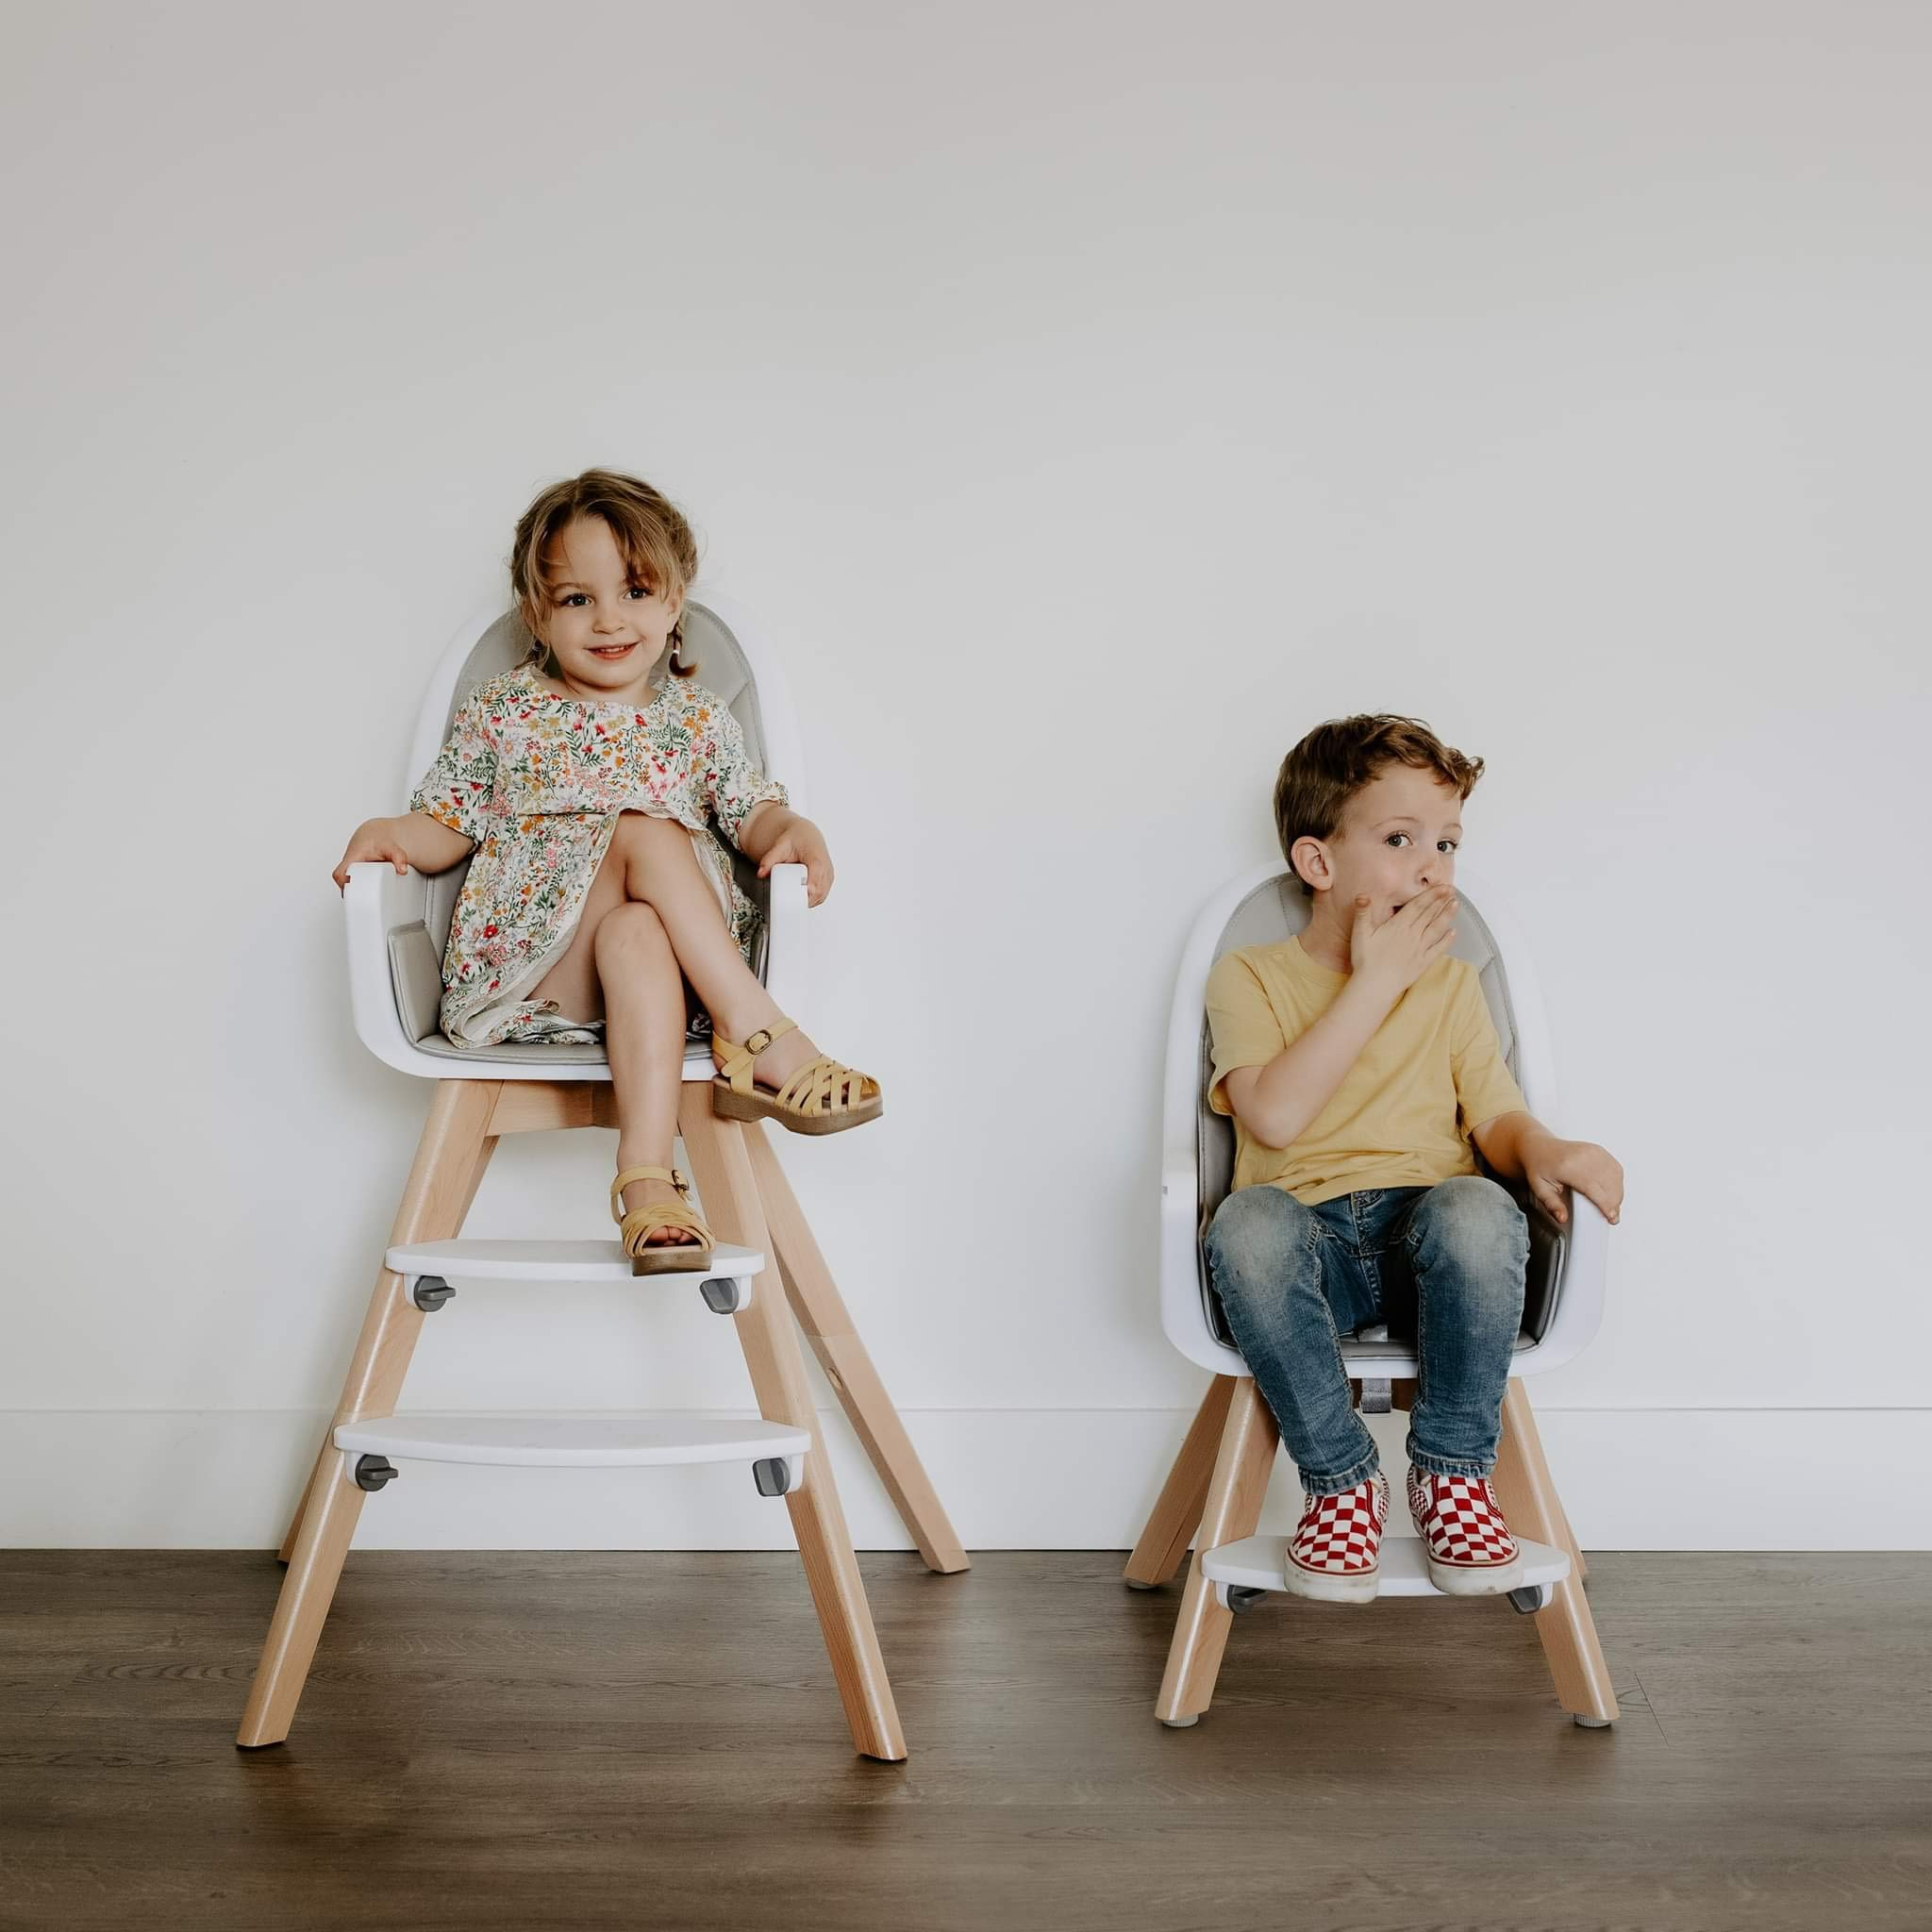 Seedling 2 Modern High Chair by Be Mindful